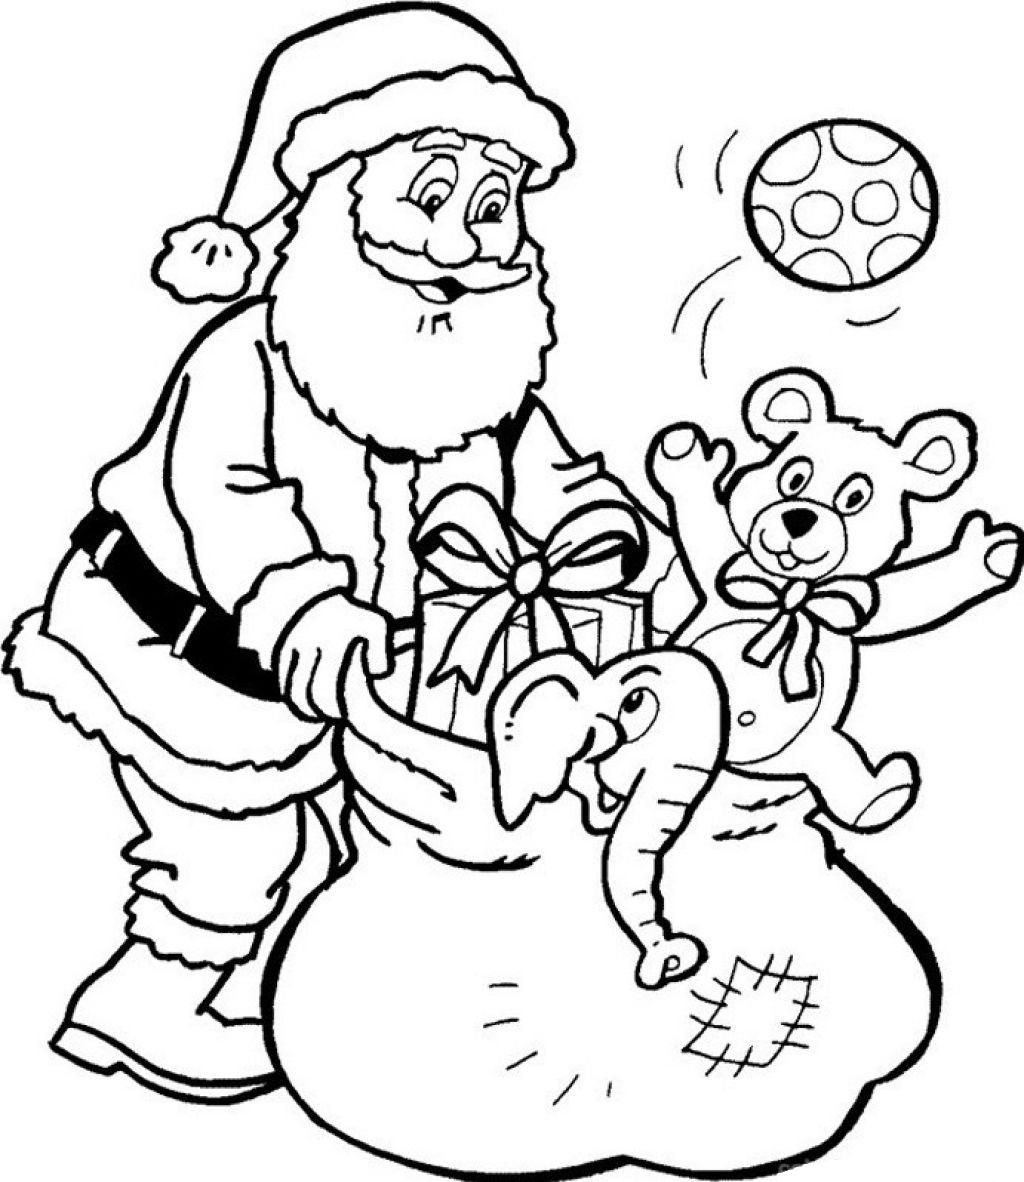 Santa Coloring Book Online With Claus And Presents Printable Pages Christmas Some